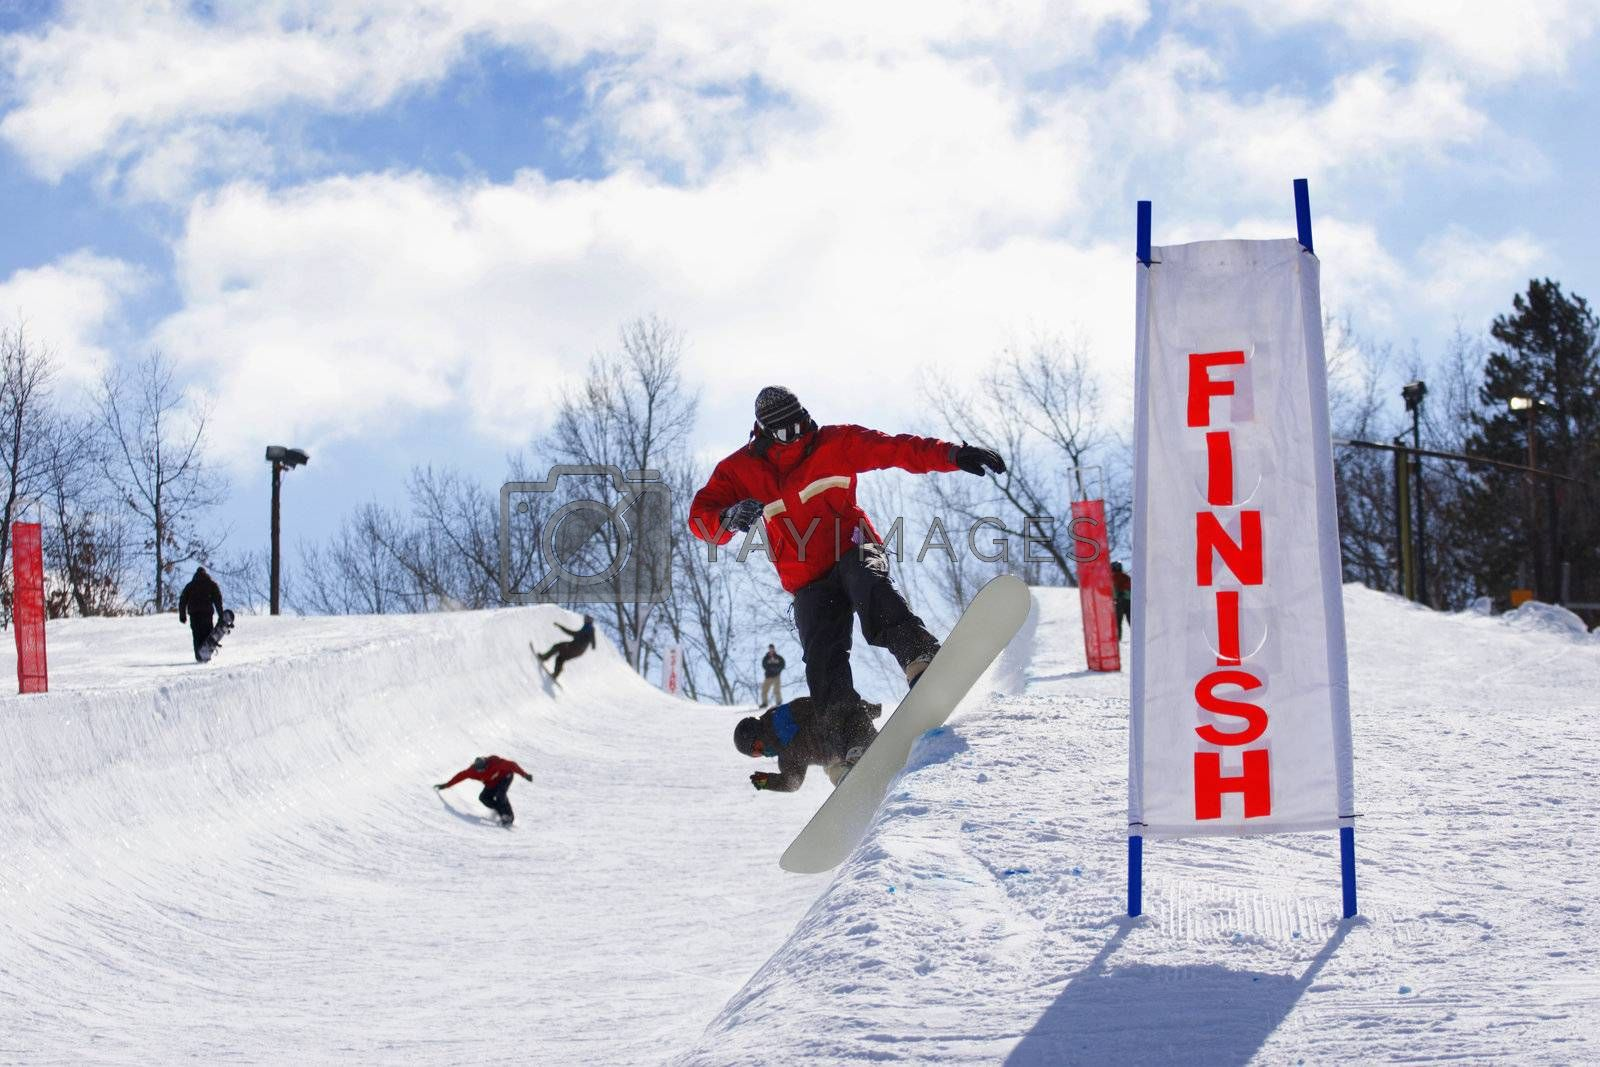 A group of snowboarders are warming up for a half pipe competition